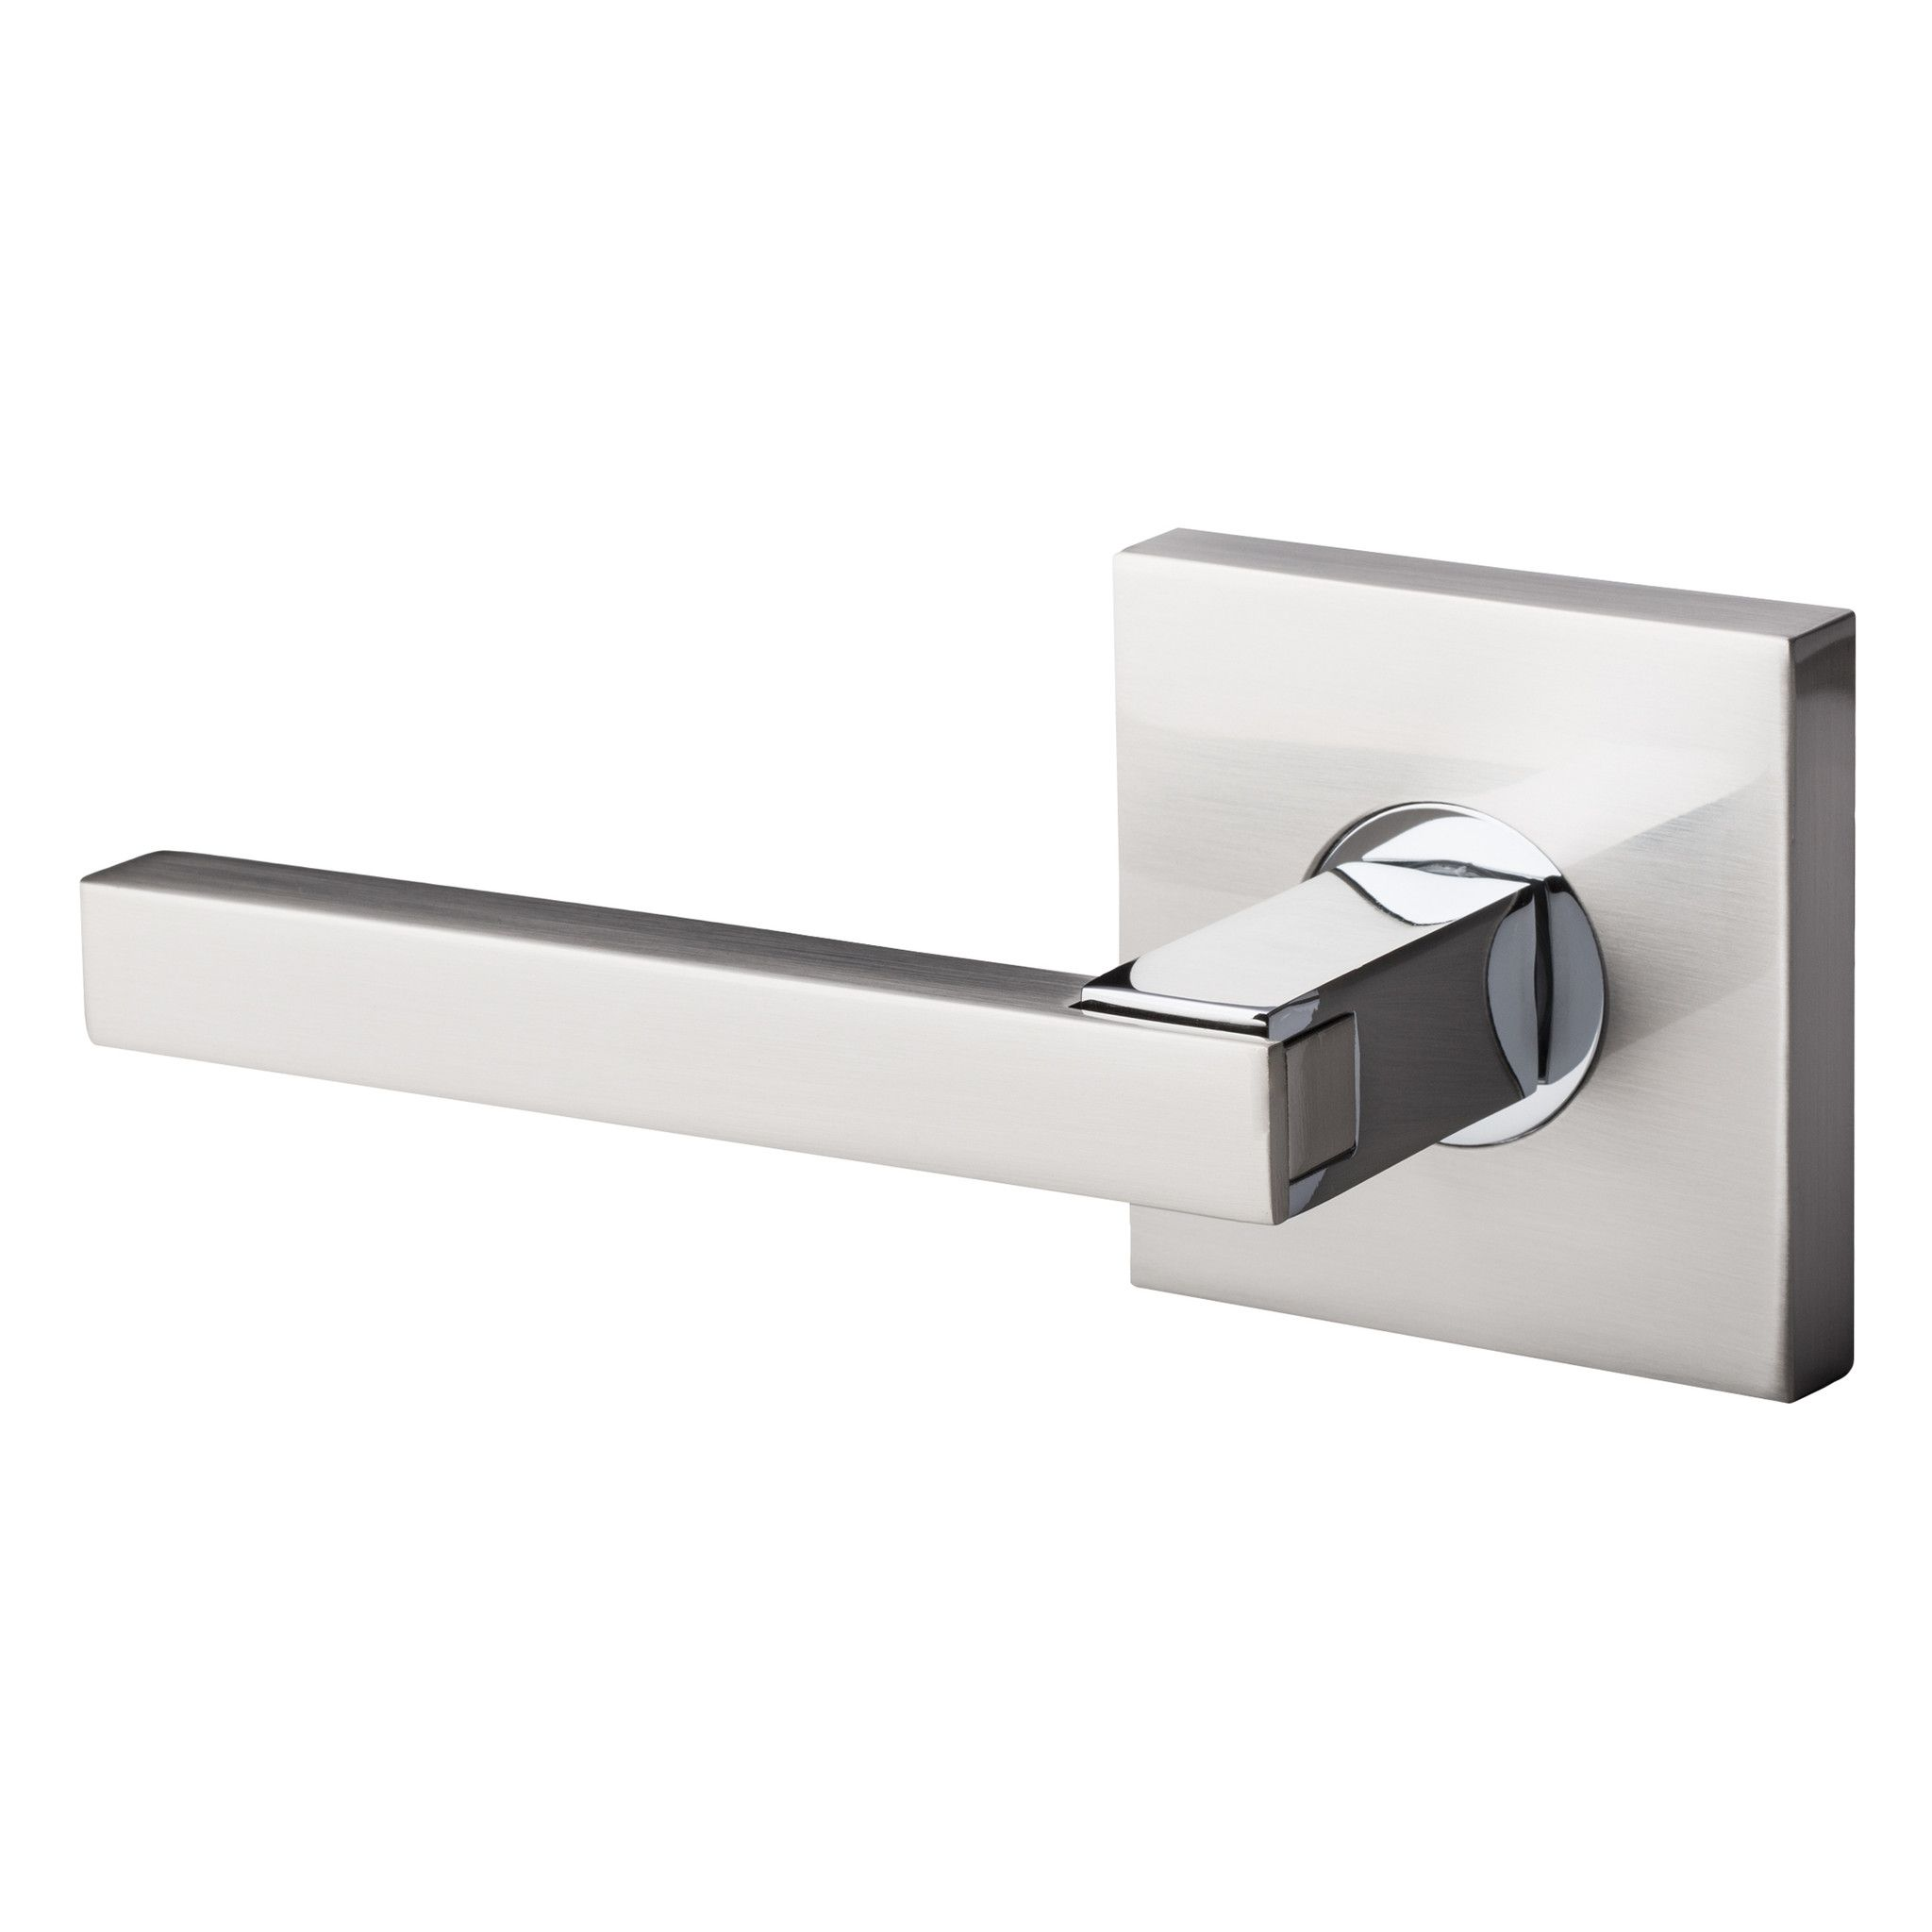 Bai 3016 Inactive Dummy Modern Door Lever Handle Set